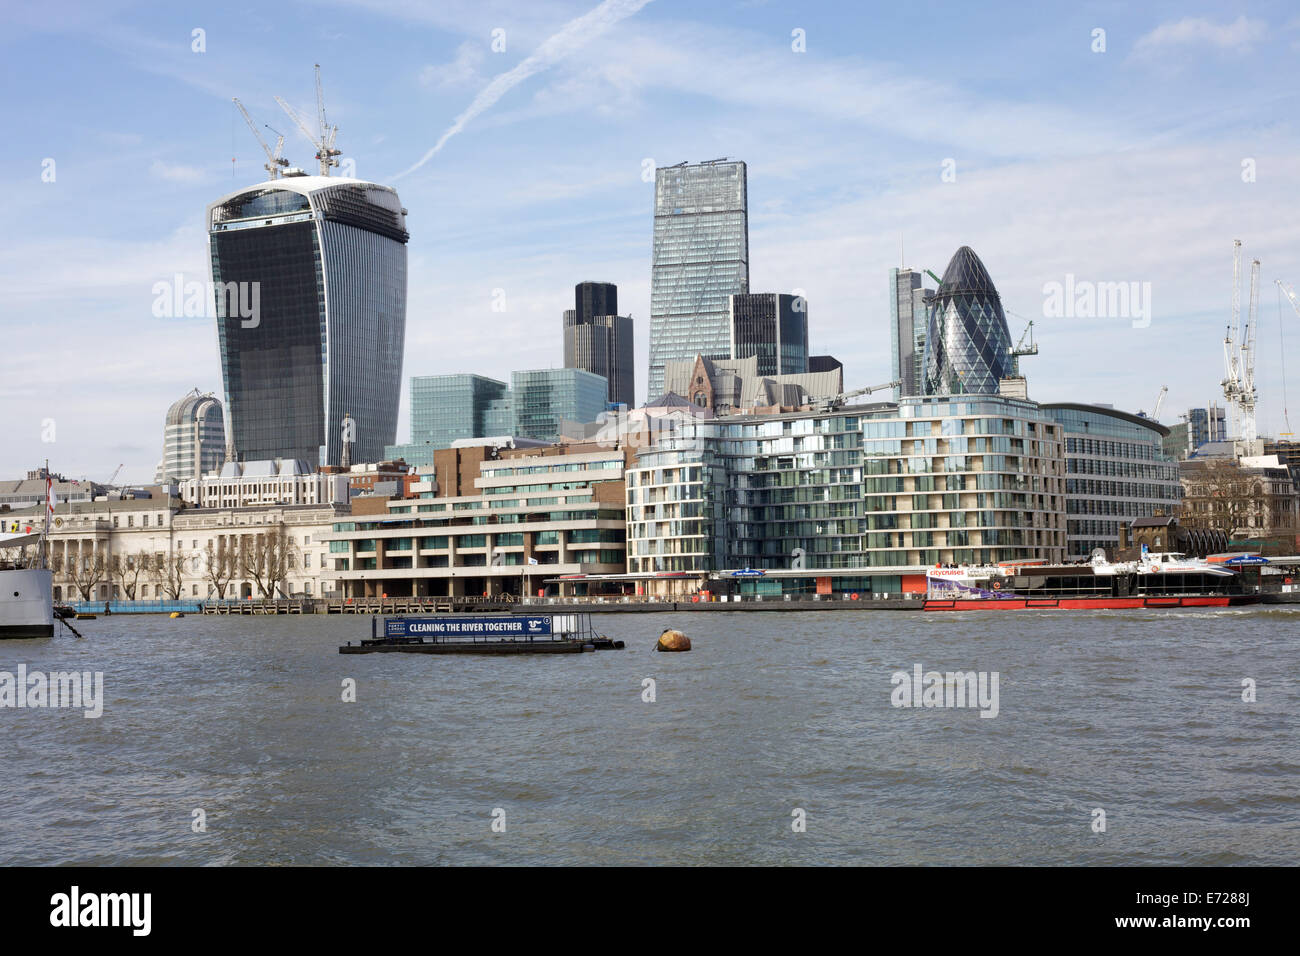 The city of London viewed from the south side of the River Thames. - Stock Image